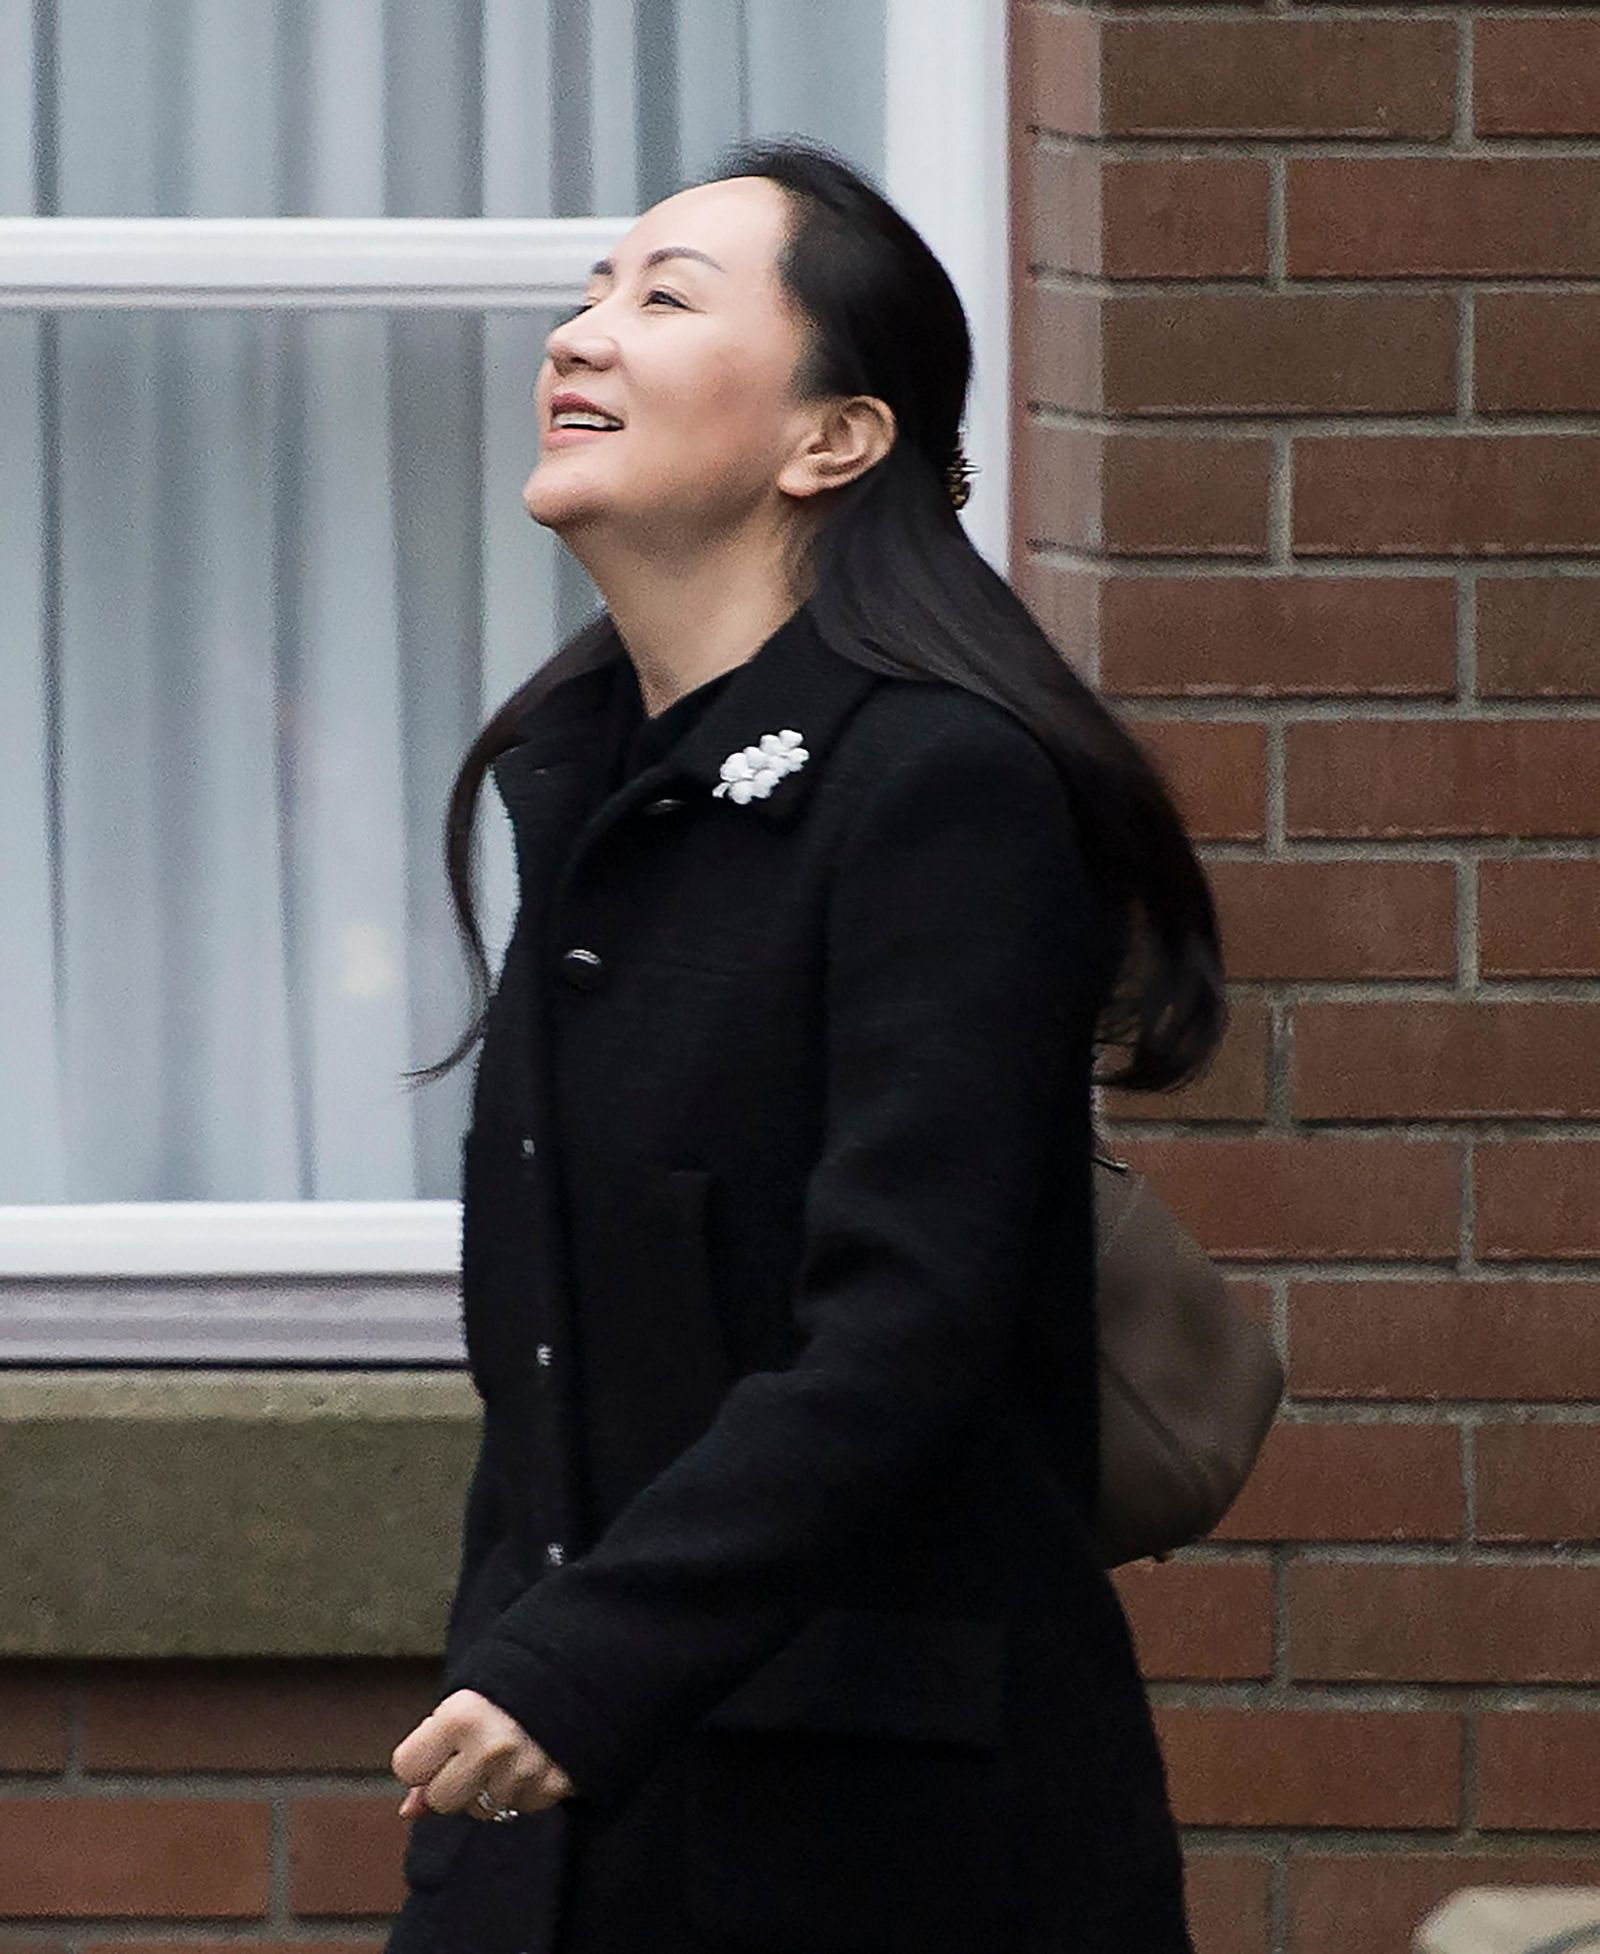 Meng Wanzhou, chief financial officer of Huawei leaves her home in Vancouver, Monday, January, 20, 2020. (Jonathan Hayward/The Canadian Press via AP)